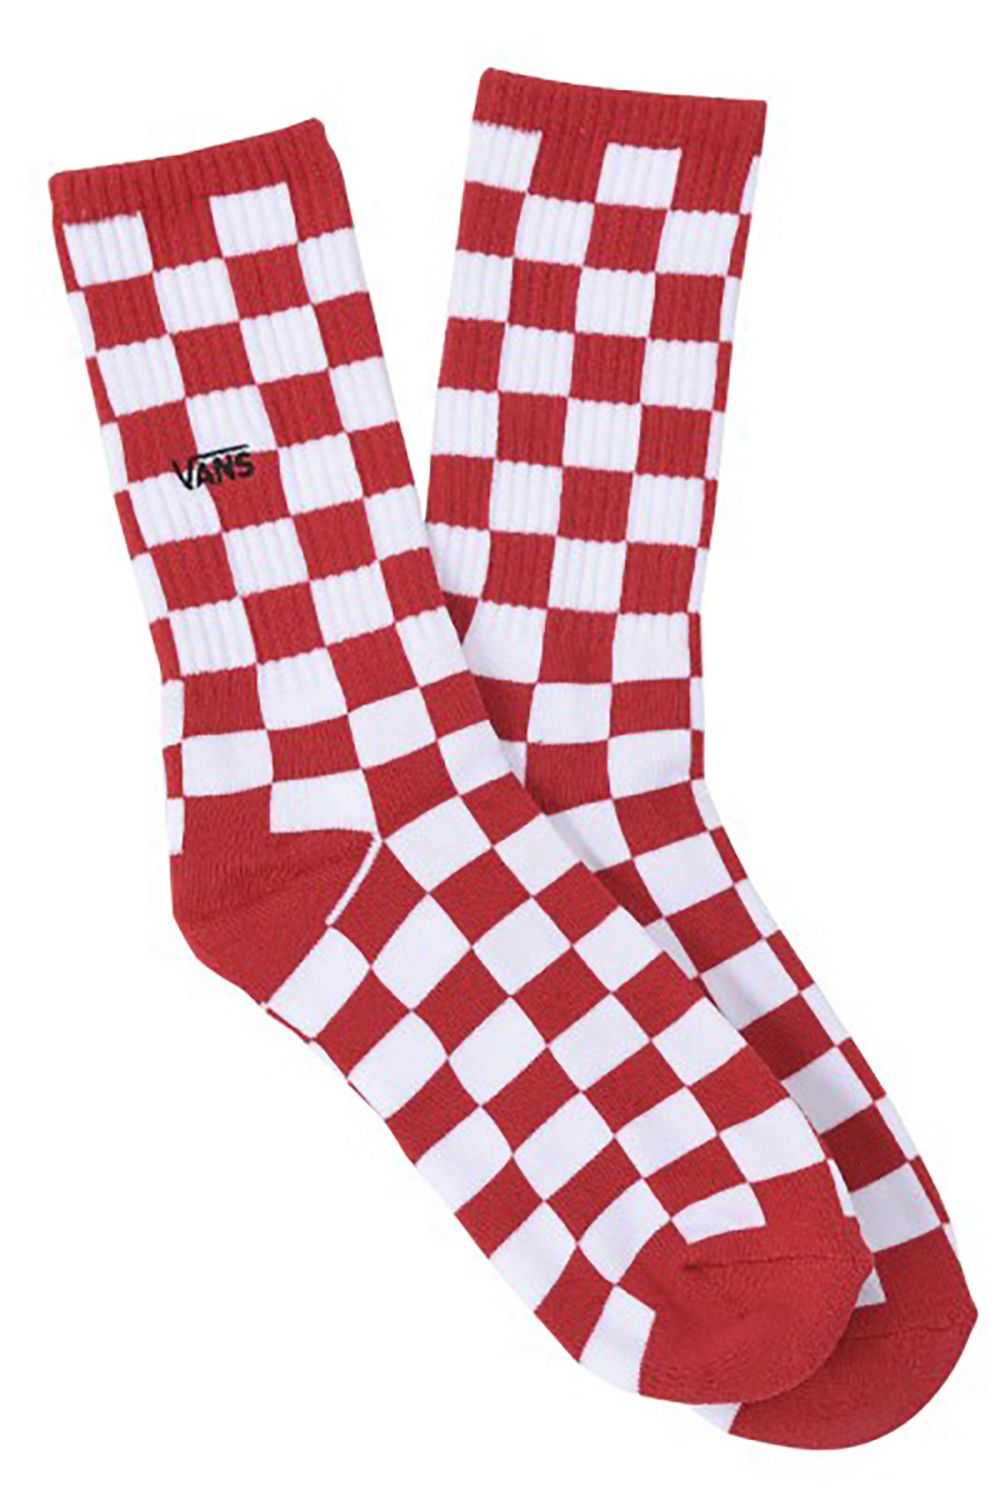 Vans Socks CHECKERBOARD CREW II (6.5-9, 1PK) Red-White Check